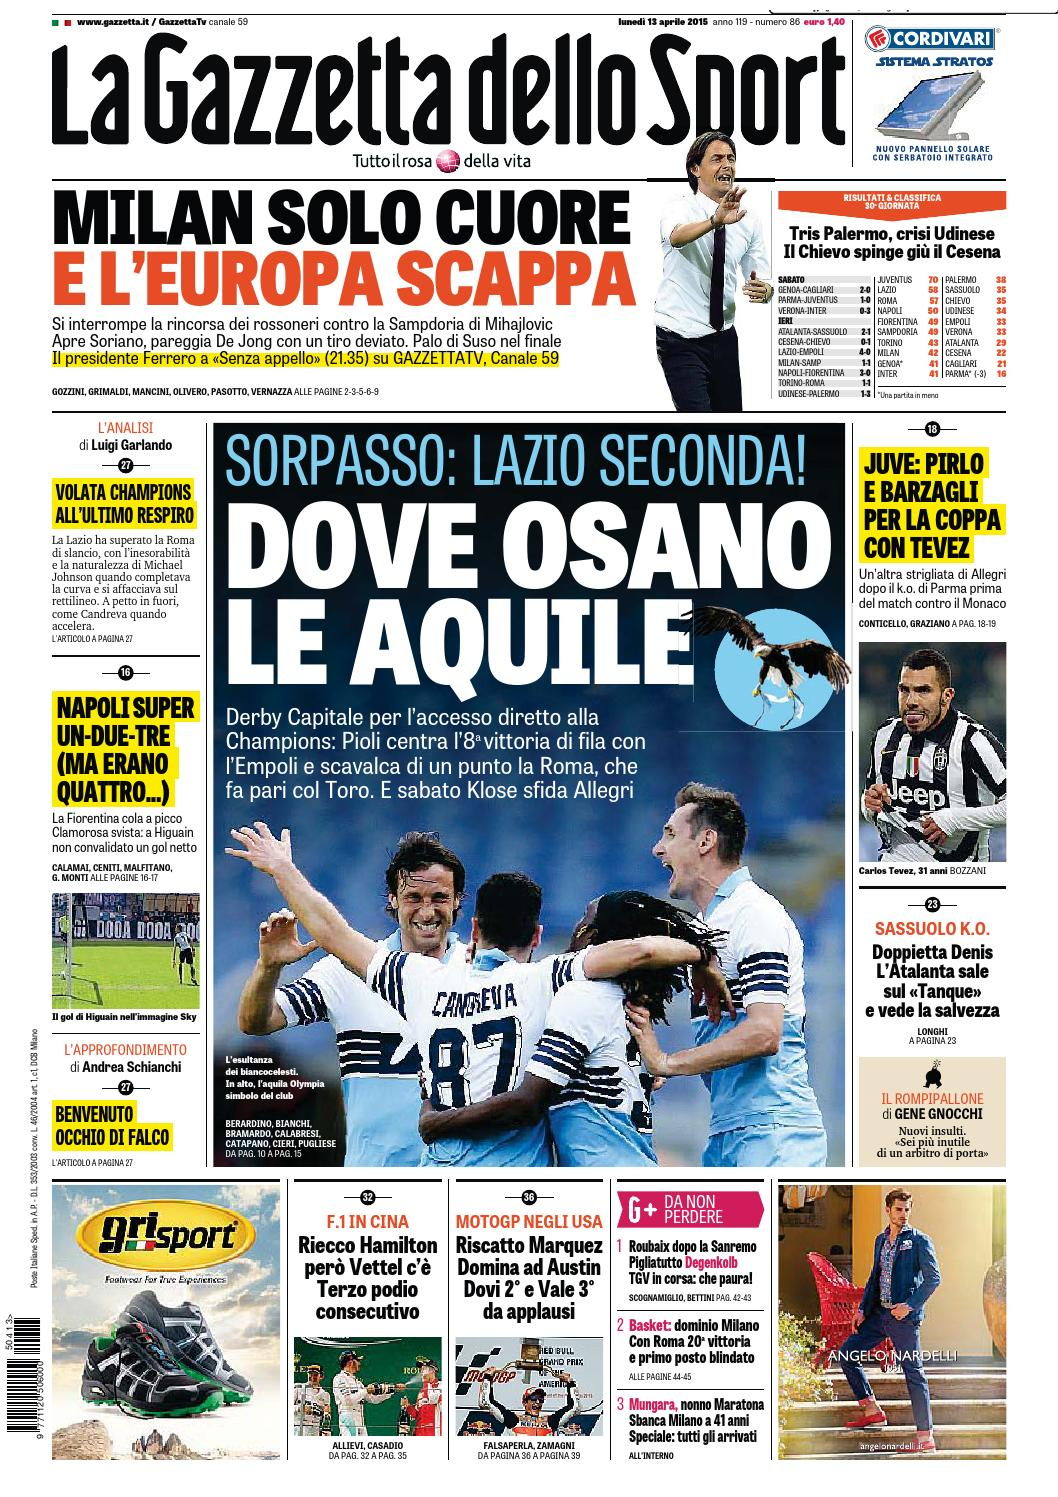 La Gazzetta Dello Sport 04 13 2015 By Nguyen Duc Thinh Issuu